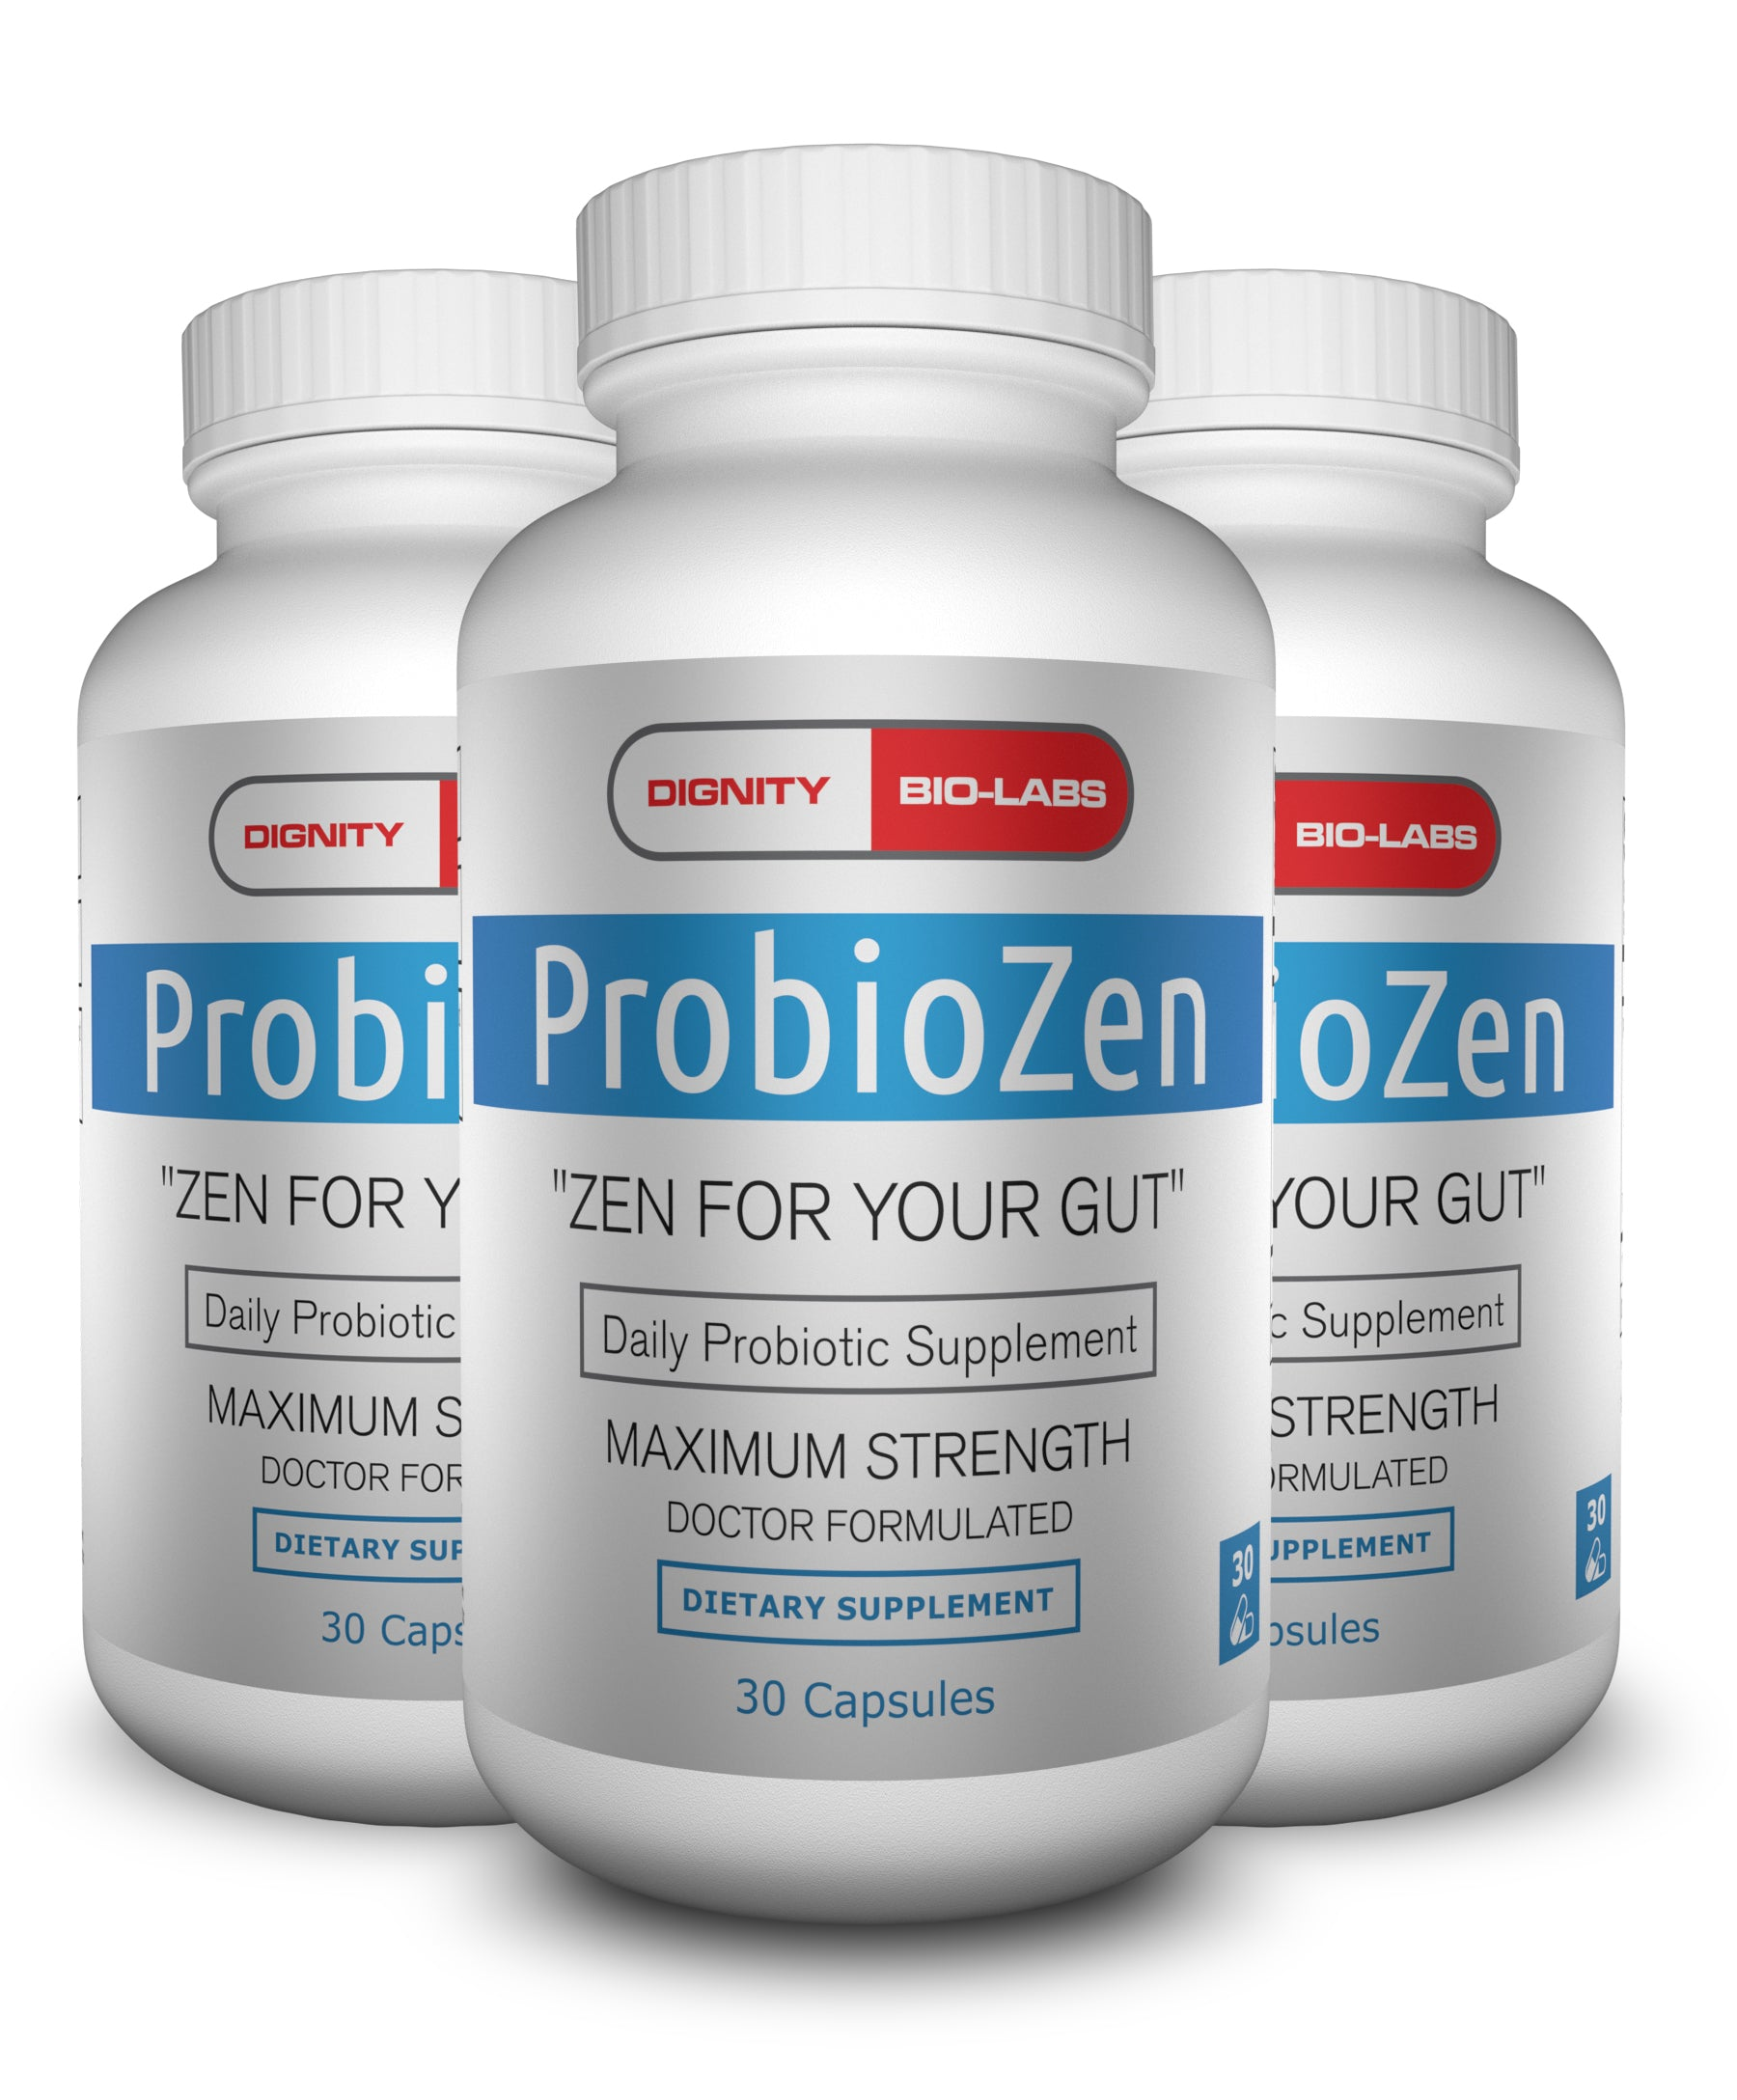 Probiozen<sup>®</sup> Daily Probiotic - OUT OF STOCK